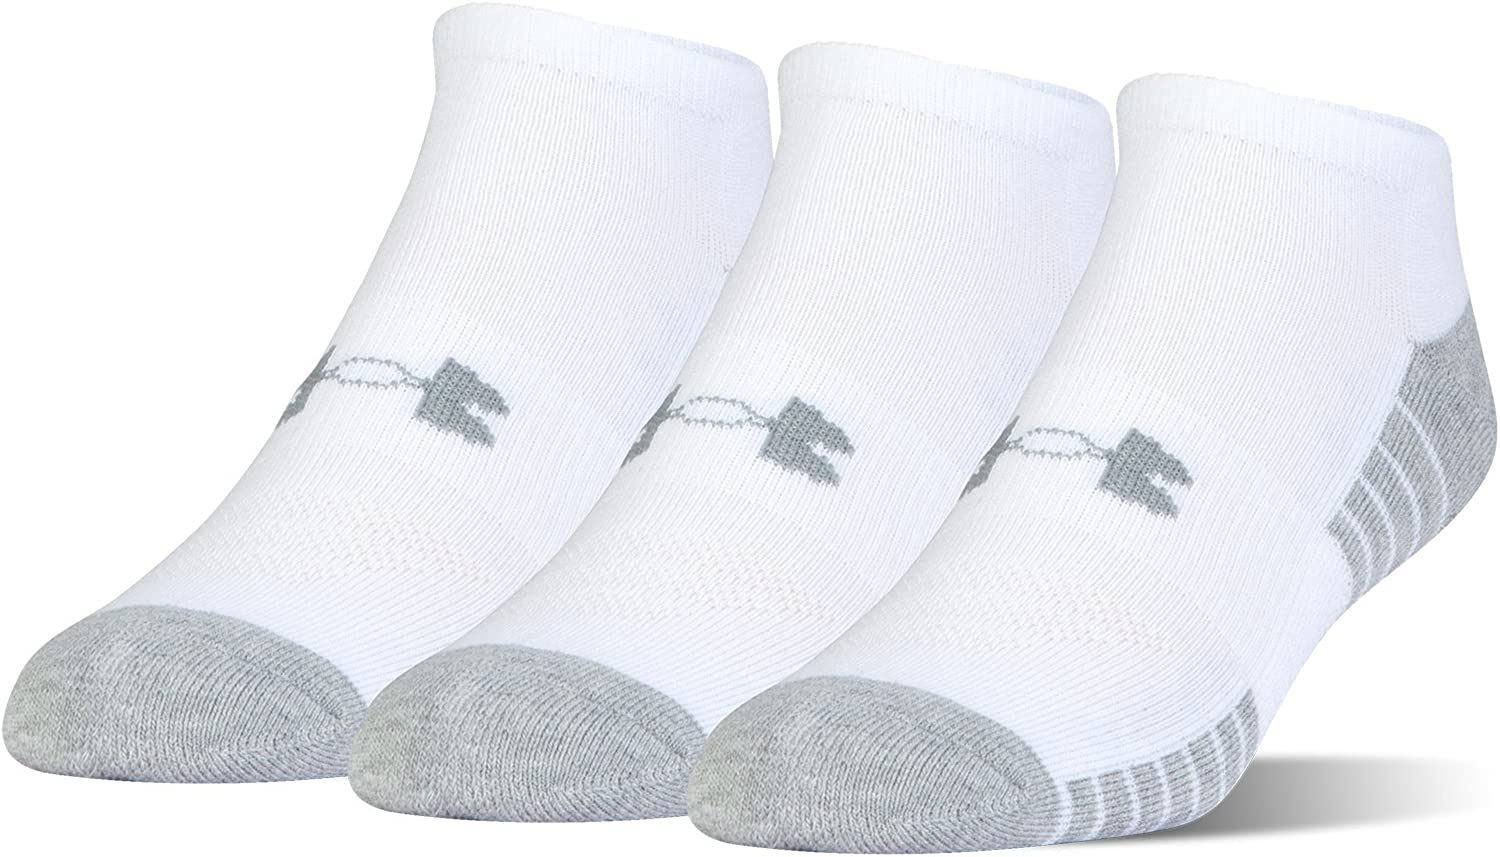 Under Armour unisex-adult Heatgear Tech No Show Socks, 3-pairs